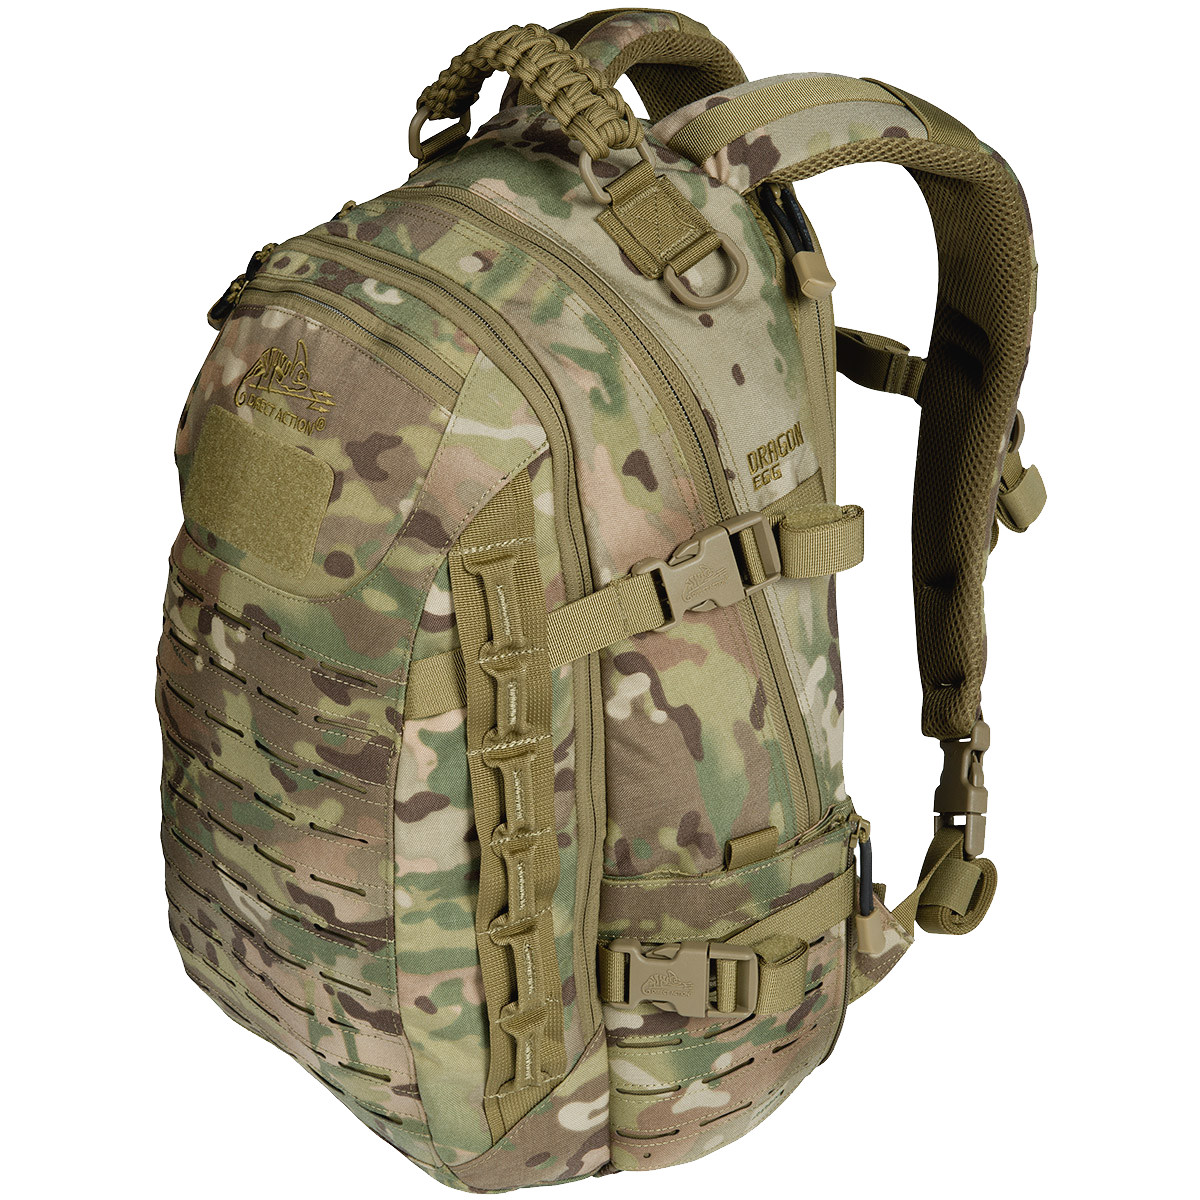 Dutch Camouflage Assault Pack PNG Image